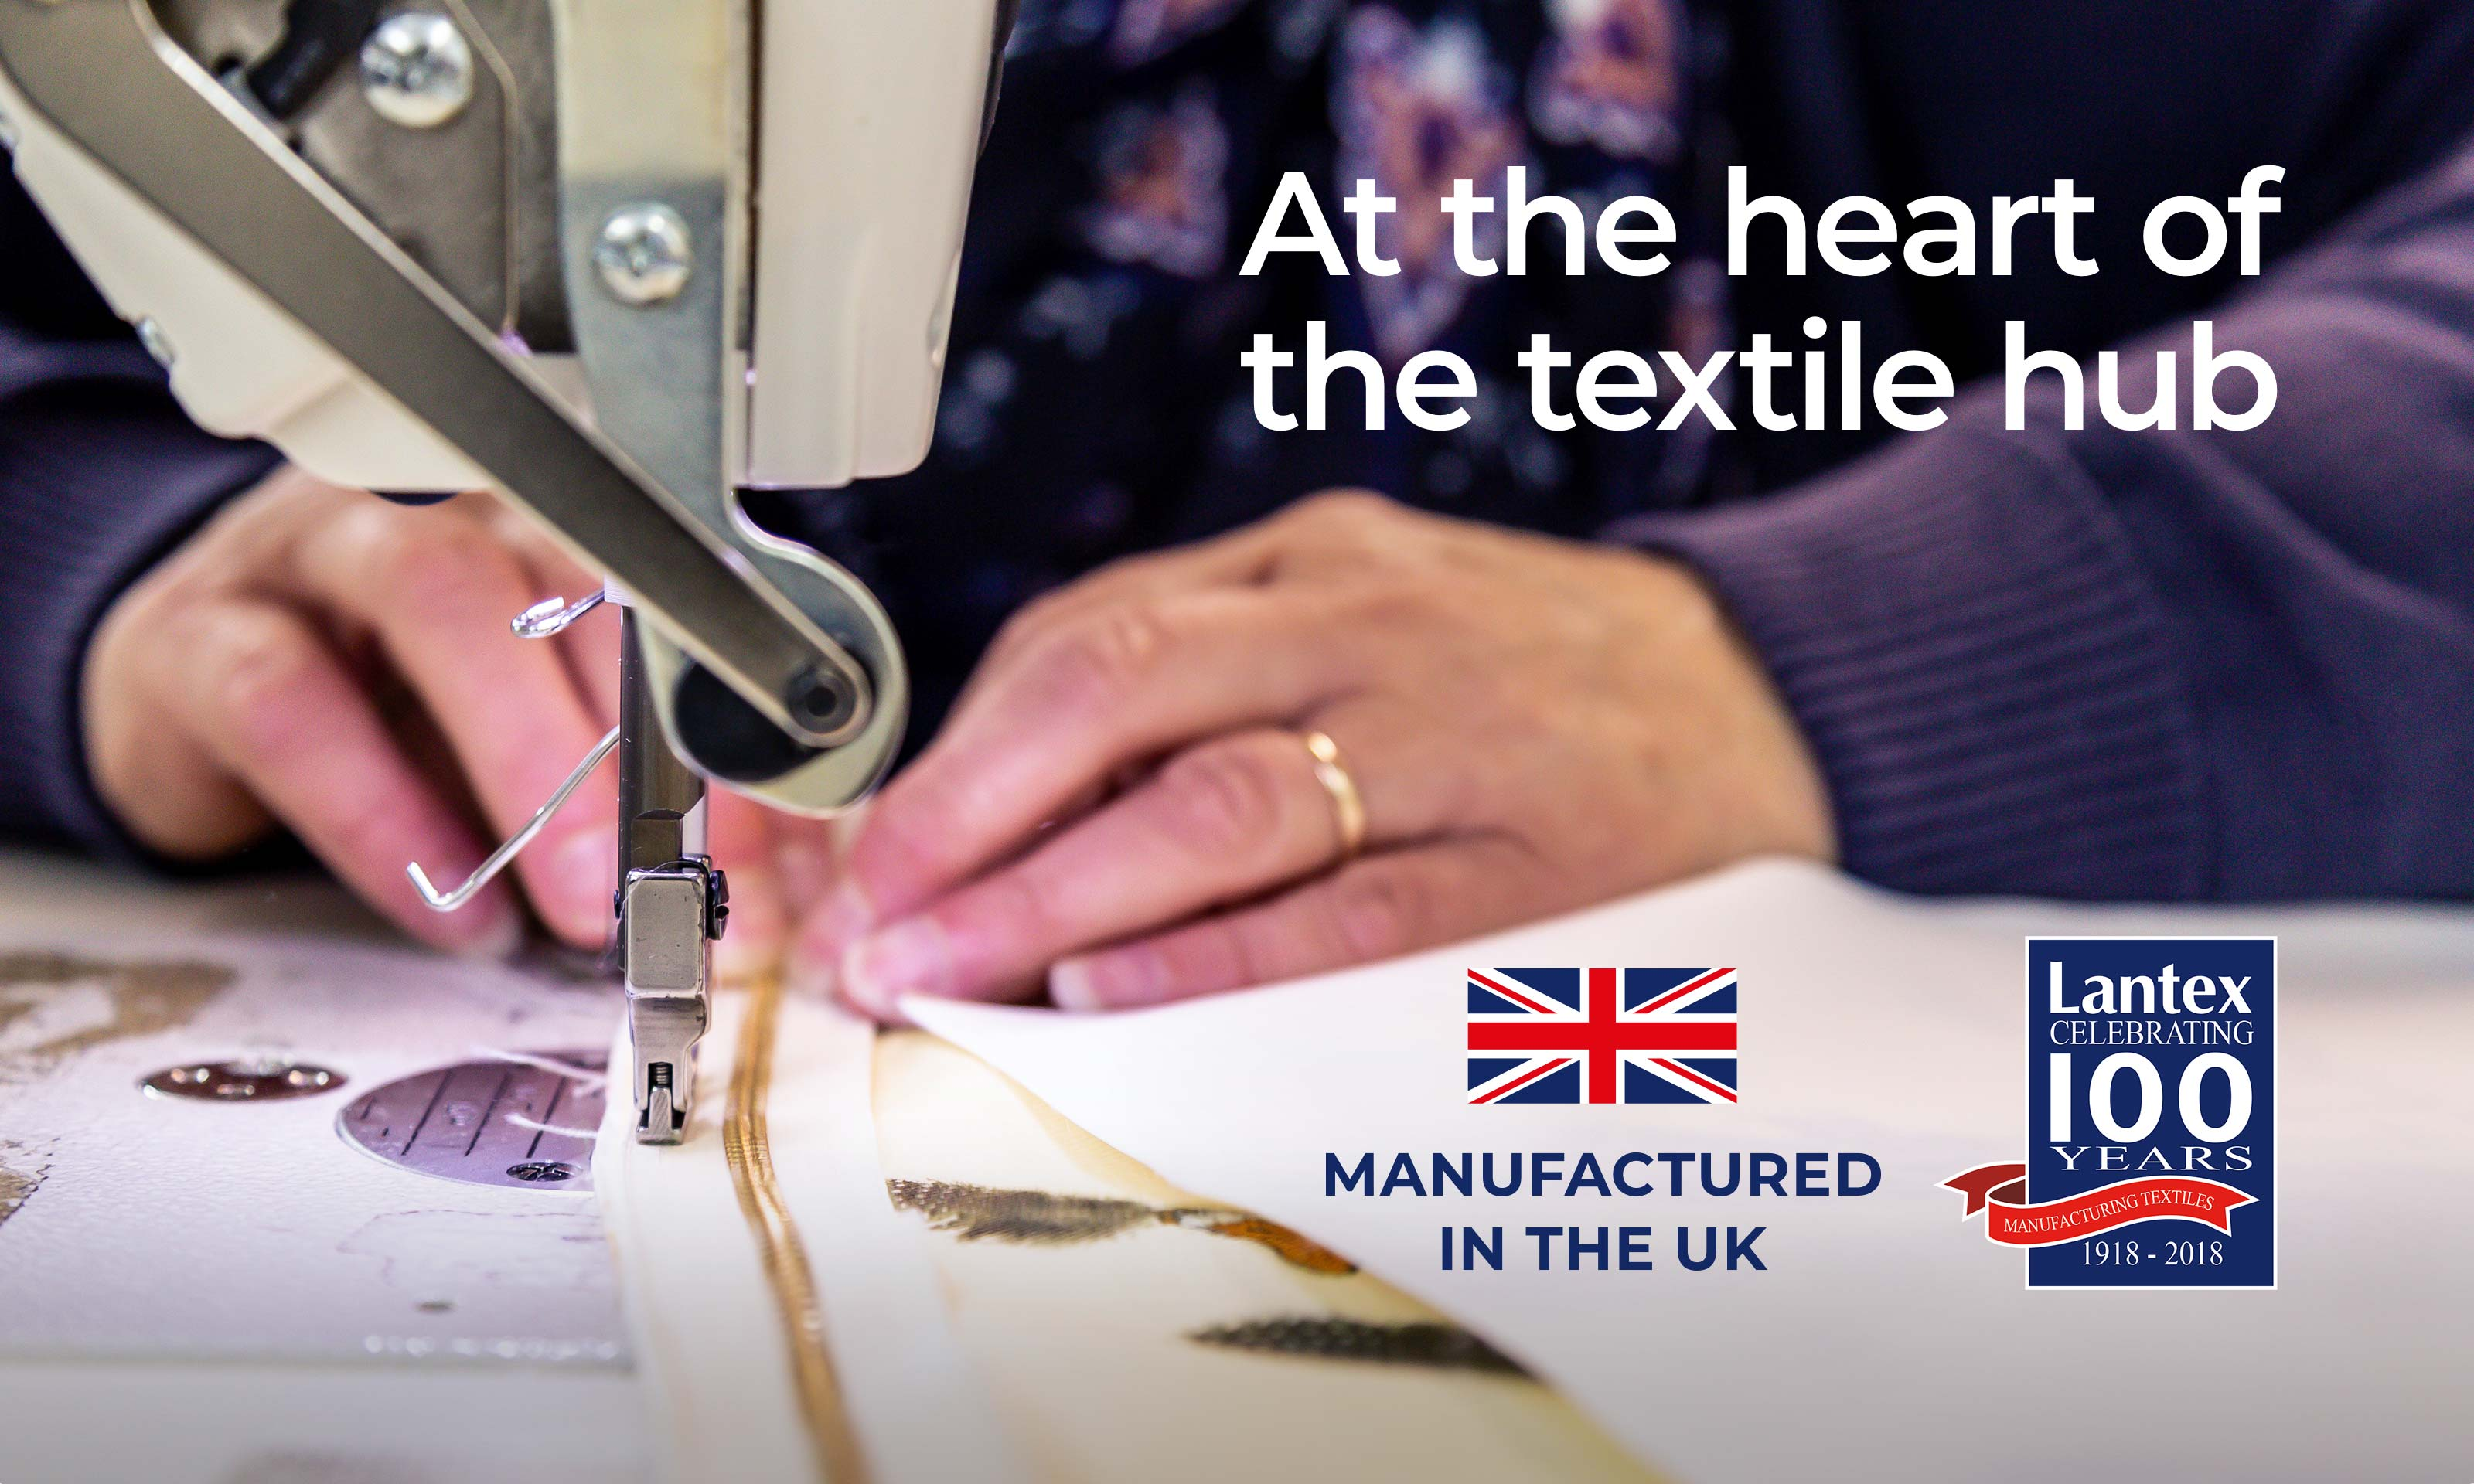 At the heart of the textile hub